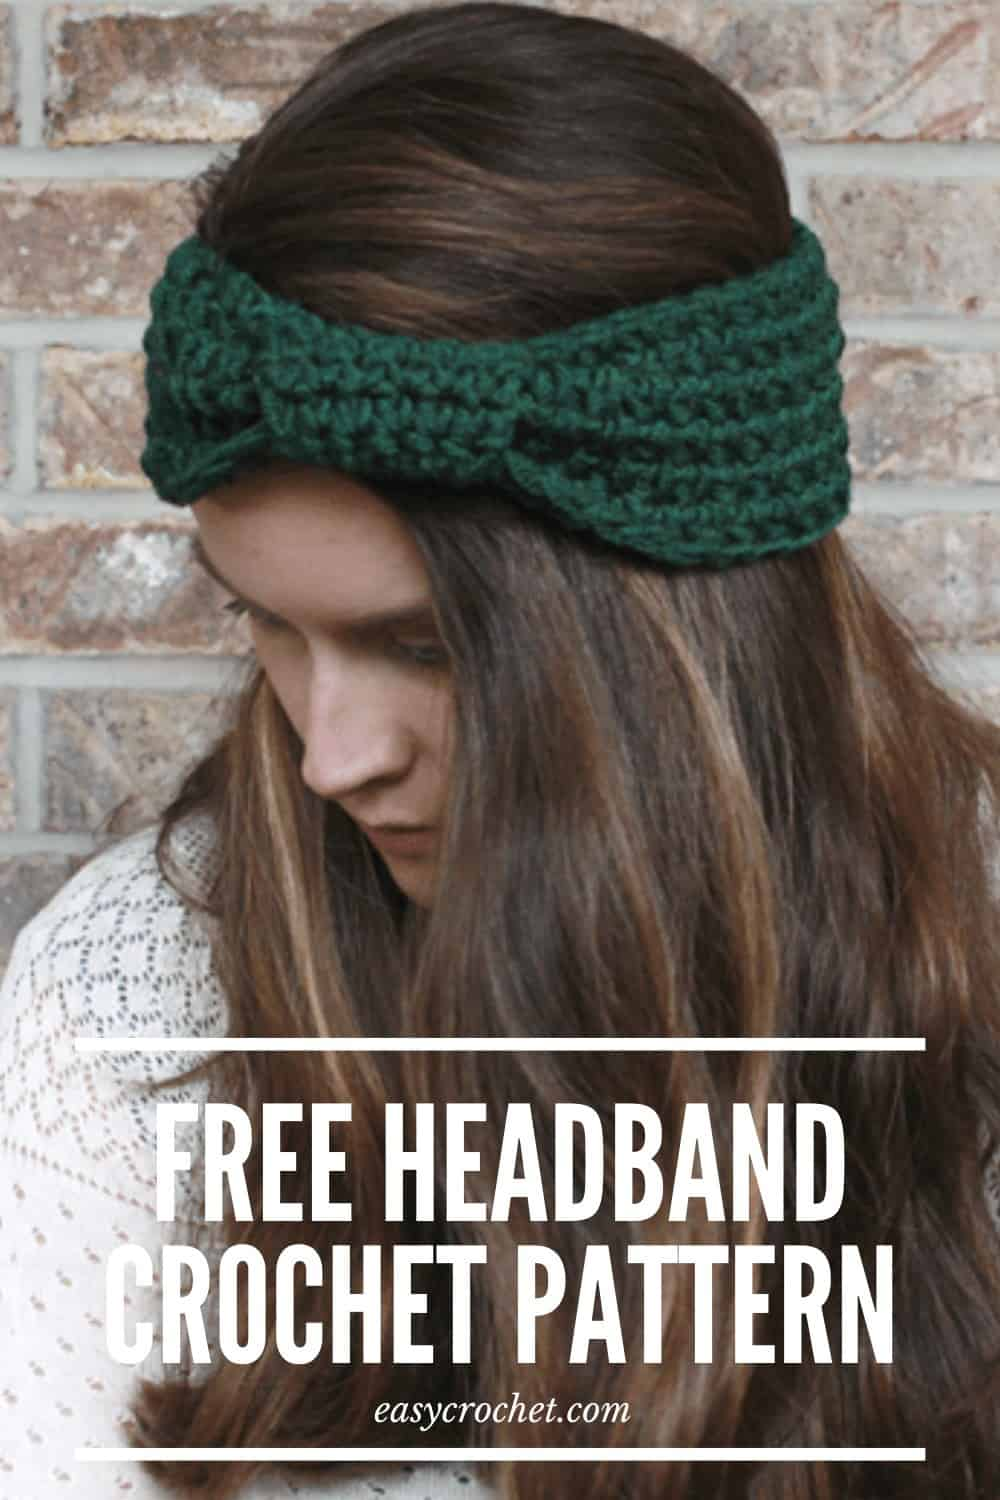 Wrapped Headband Crochet Pattern from Easy Crochet - Free Crochet Headband Pattern via @easycrochetcom